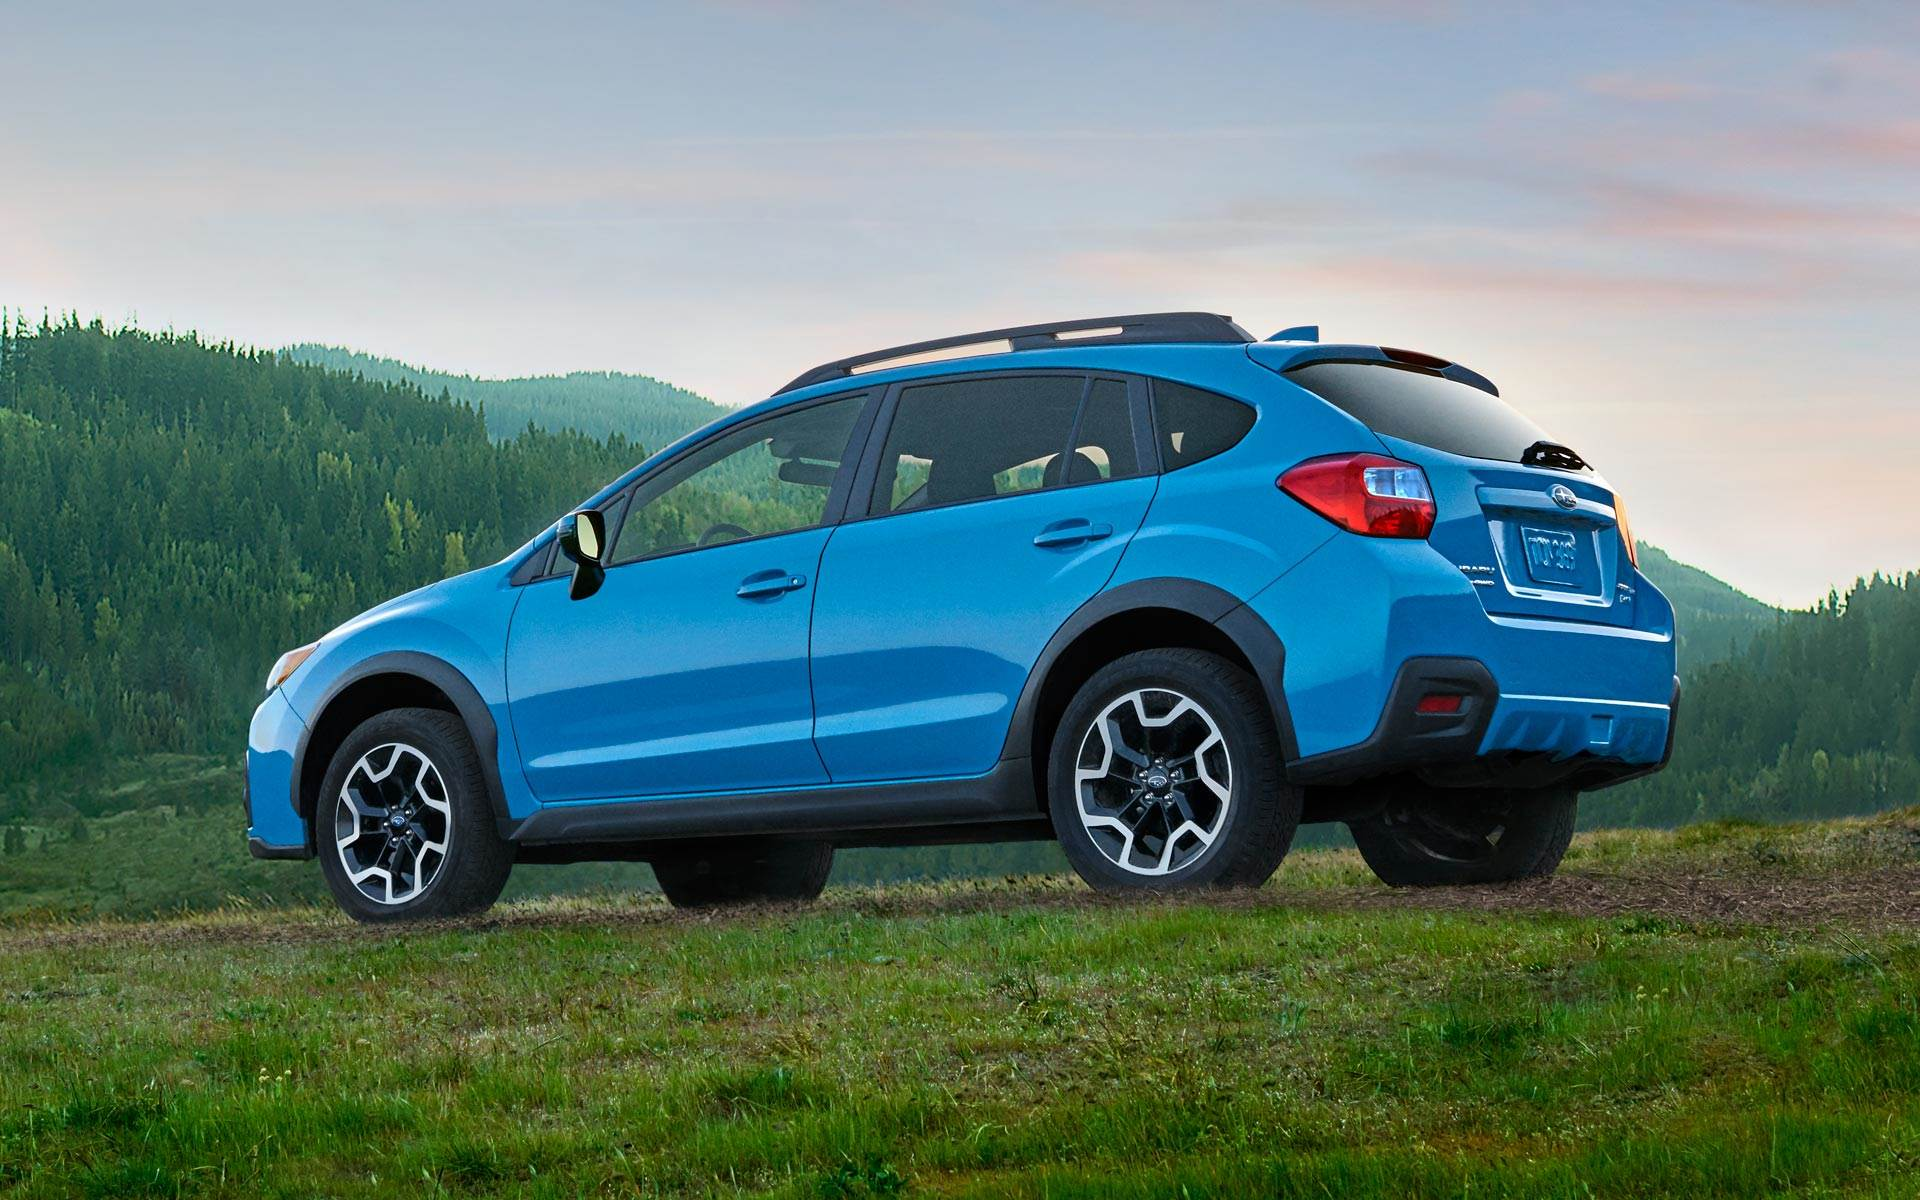 Subaru Crosstrek Sti Wheels >> Any chance of the new Subaru Hyper Blue color for 2016 ...